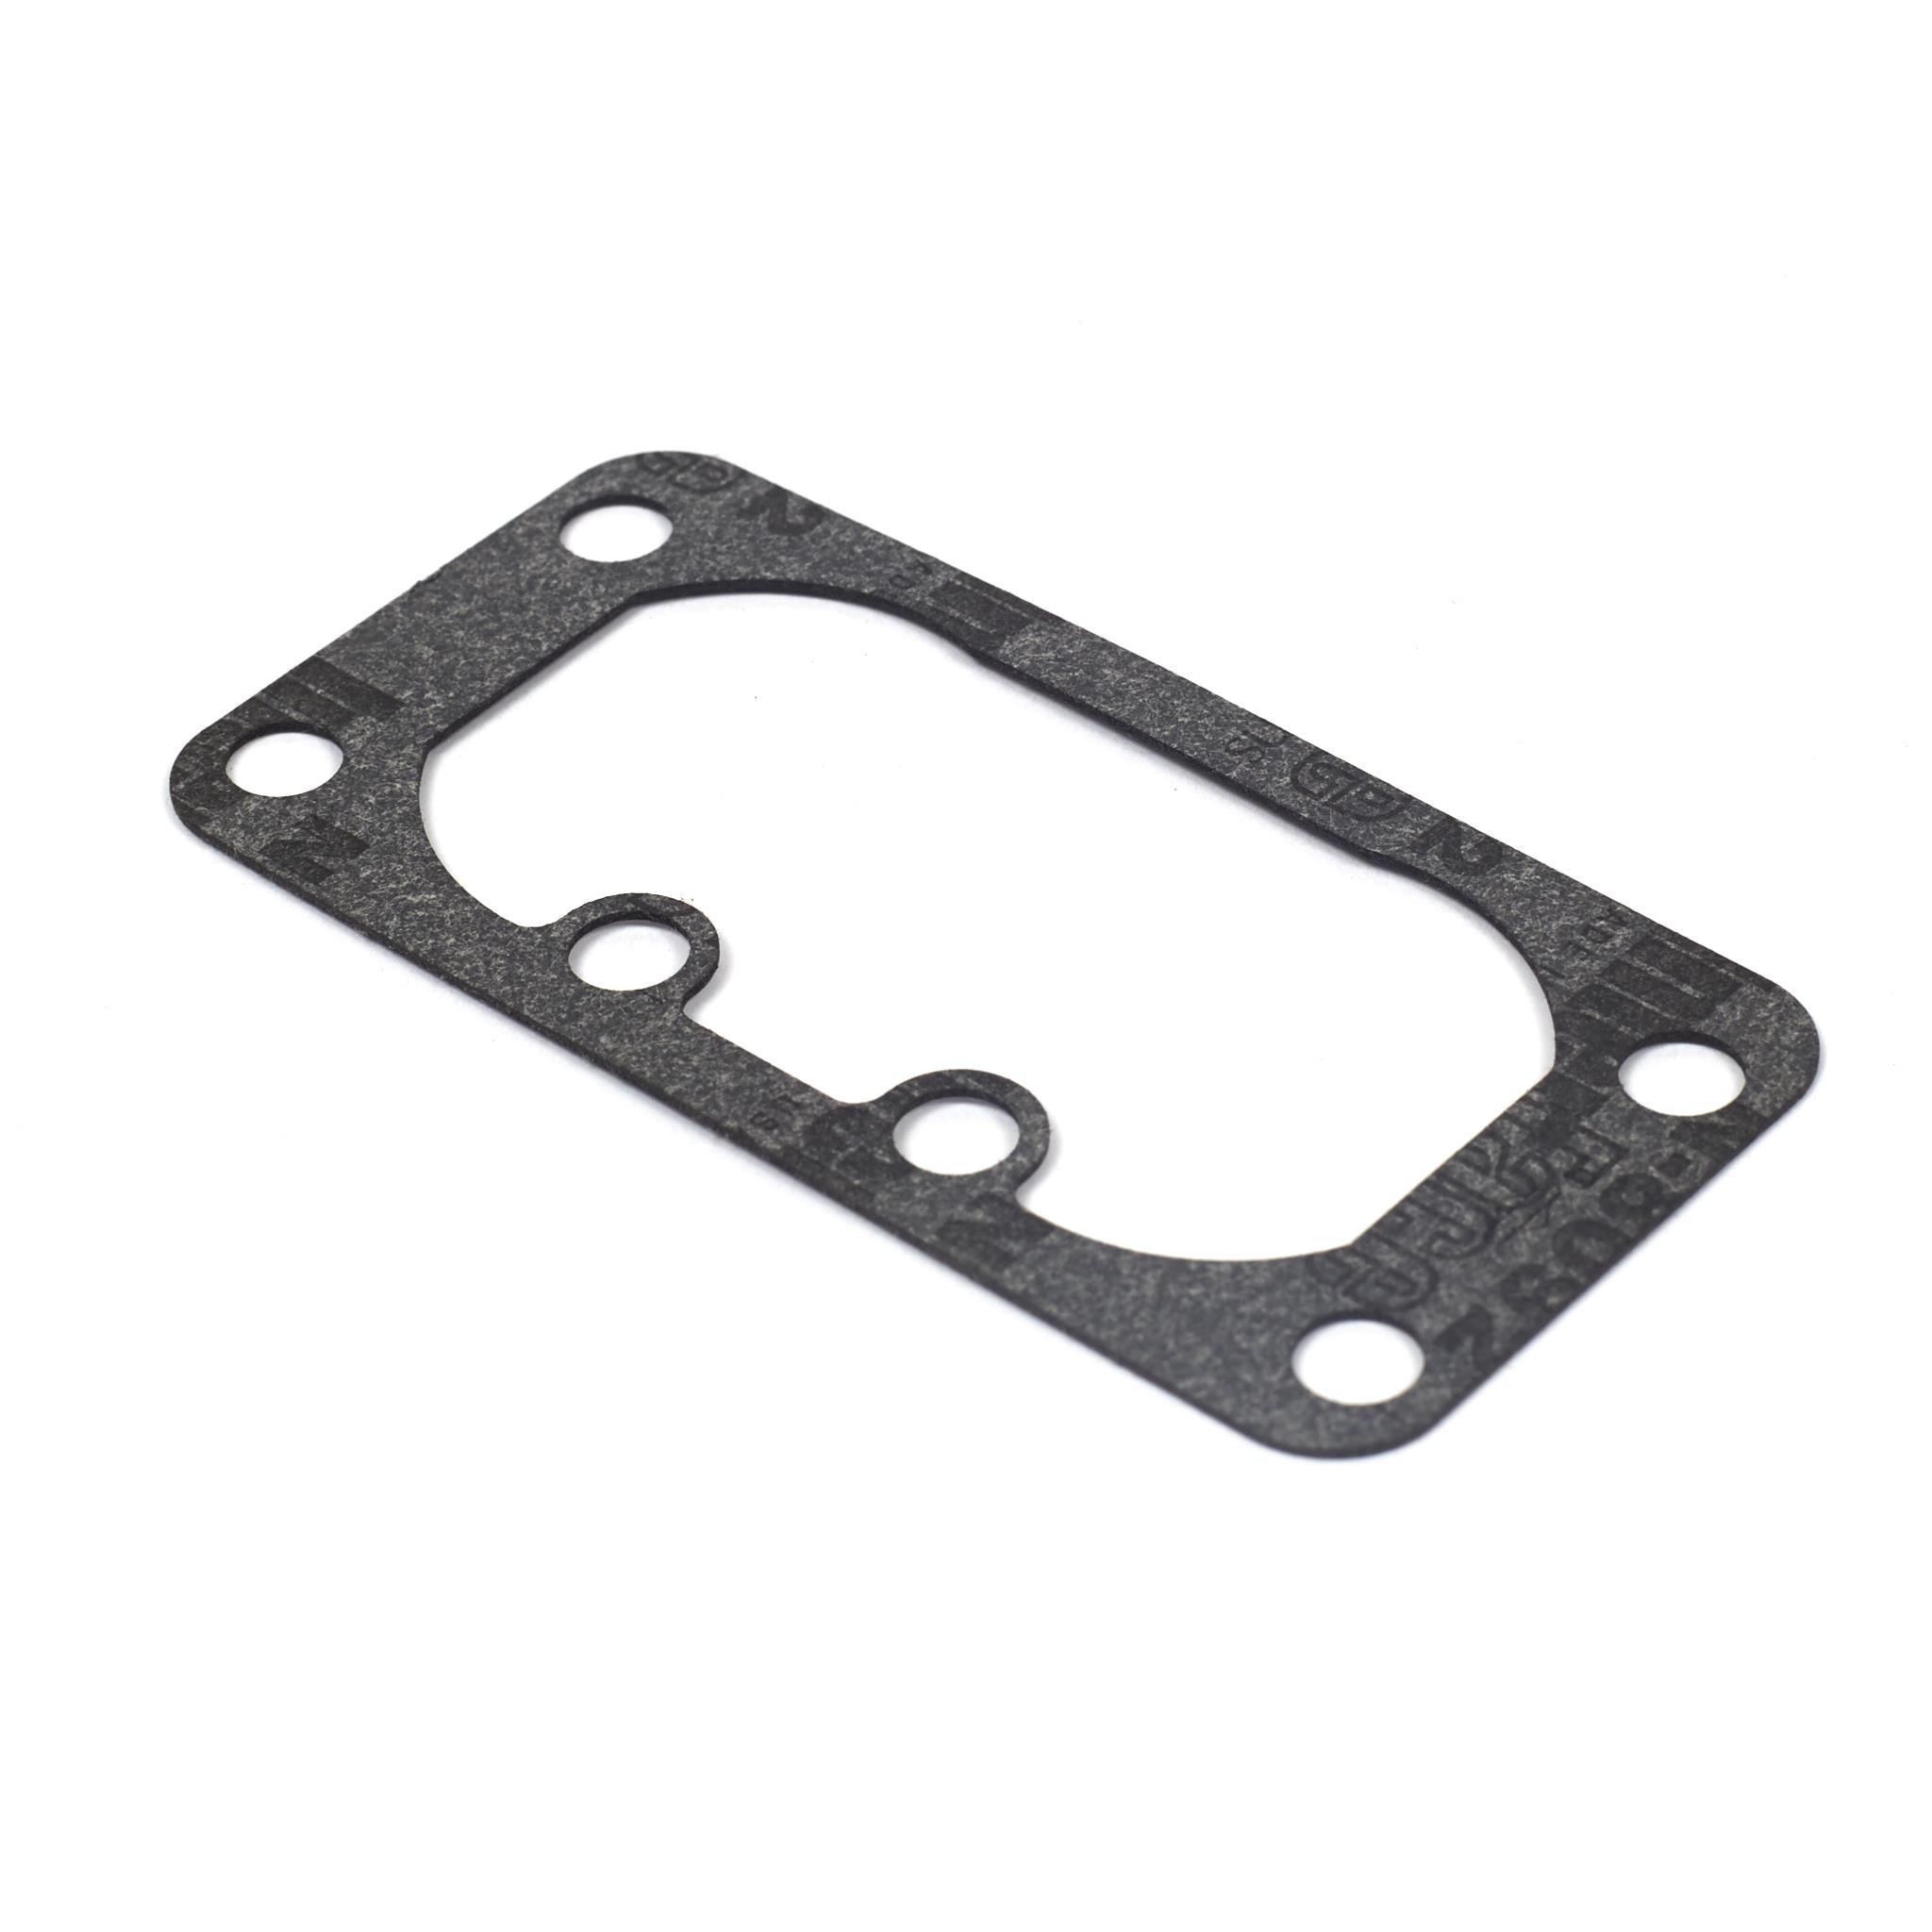 Air Cleaner Gasket 691001 Genuine Briggs /& Stratton OEM